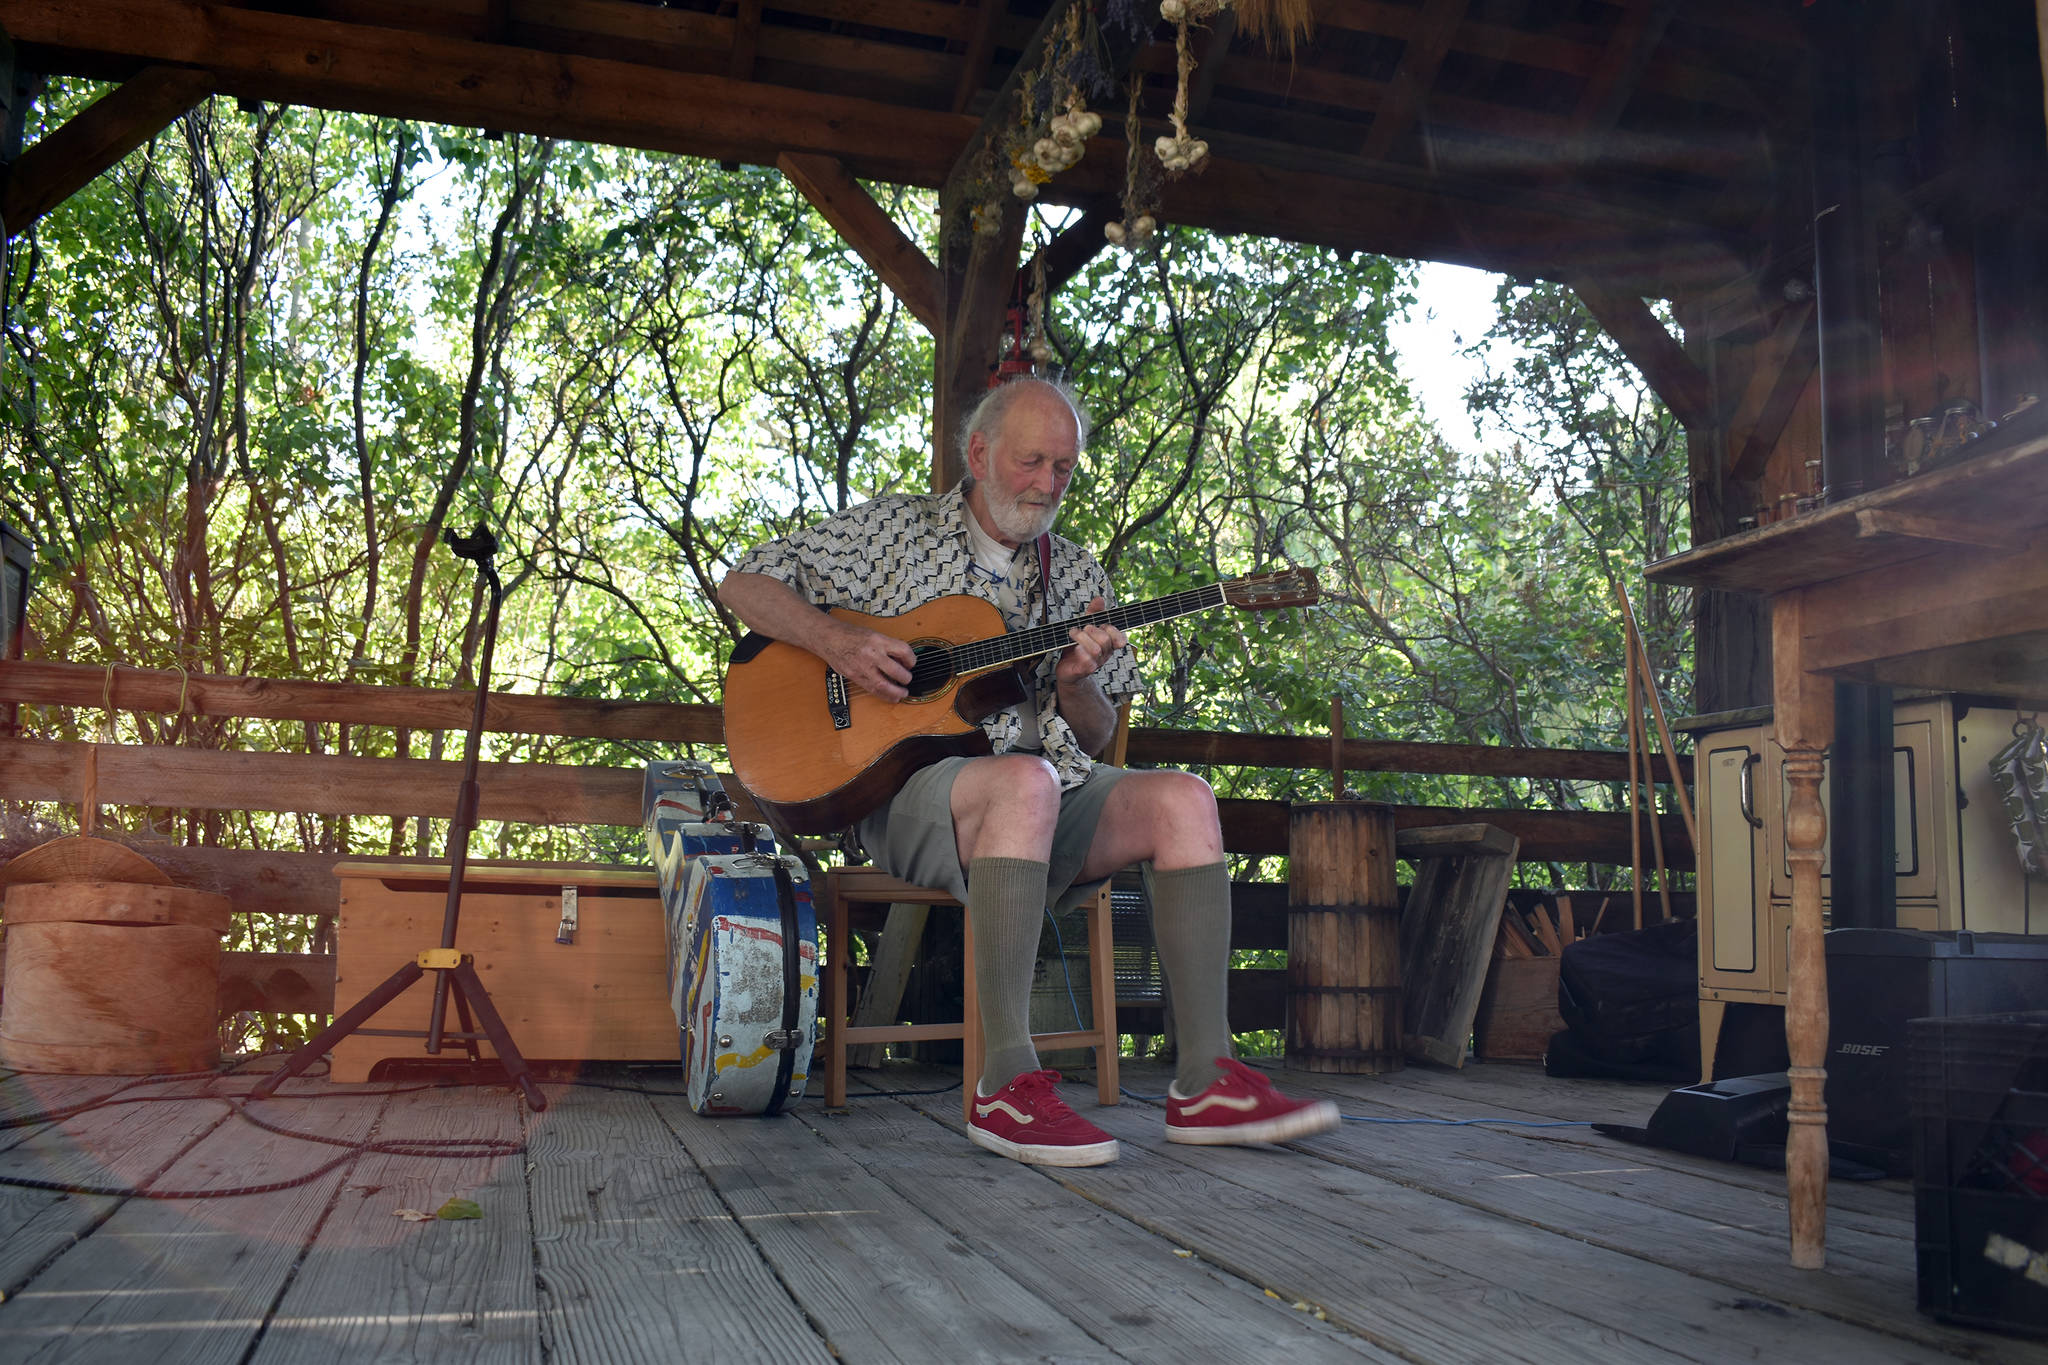 Canadian folk musician Valdy took to the Grist Mill stage as one of the first major concerts since COVID-19 began to spread. (Brennan Phillips - Keremeos Review)